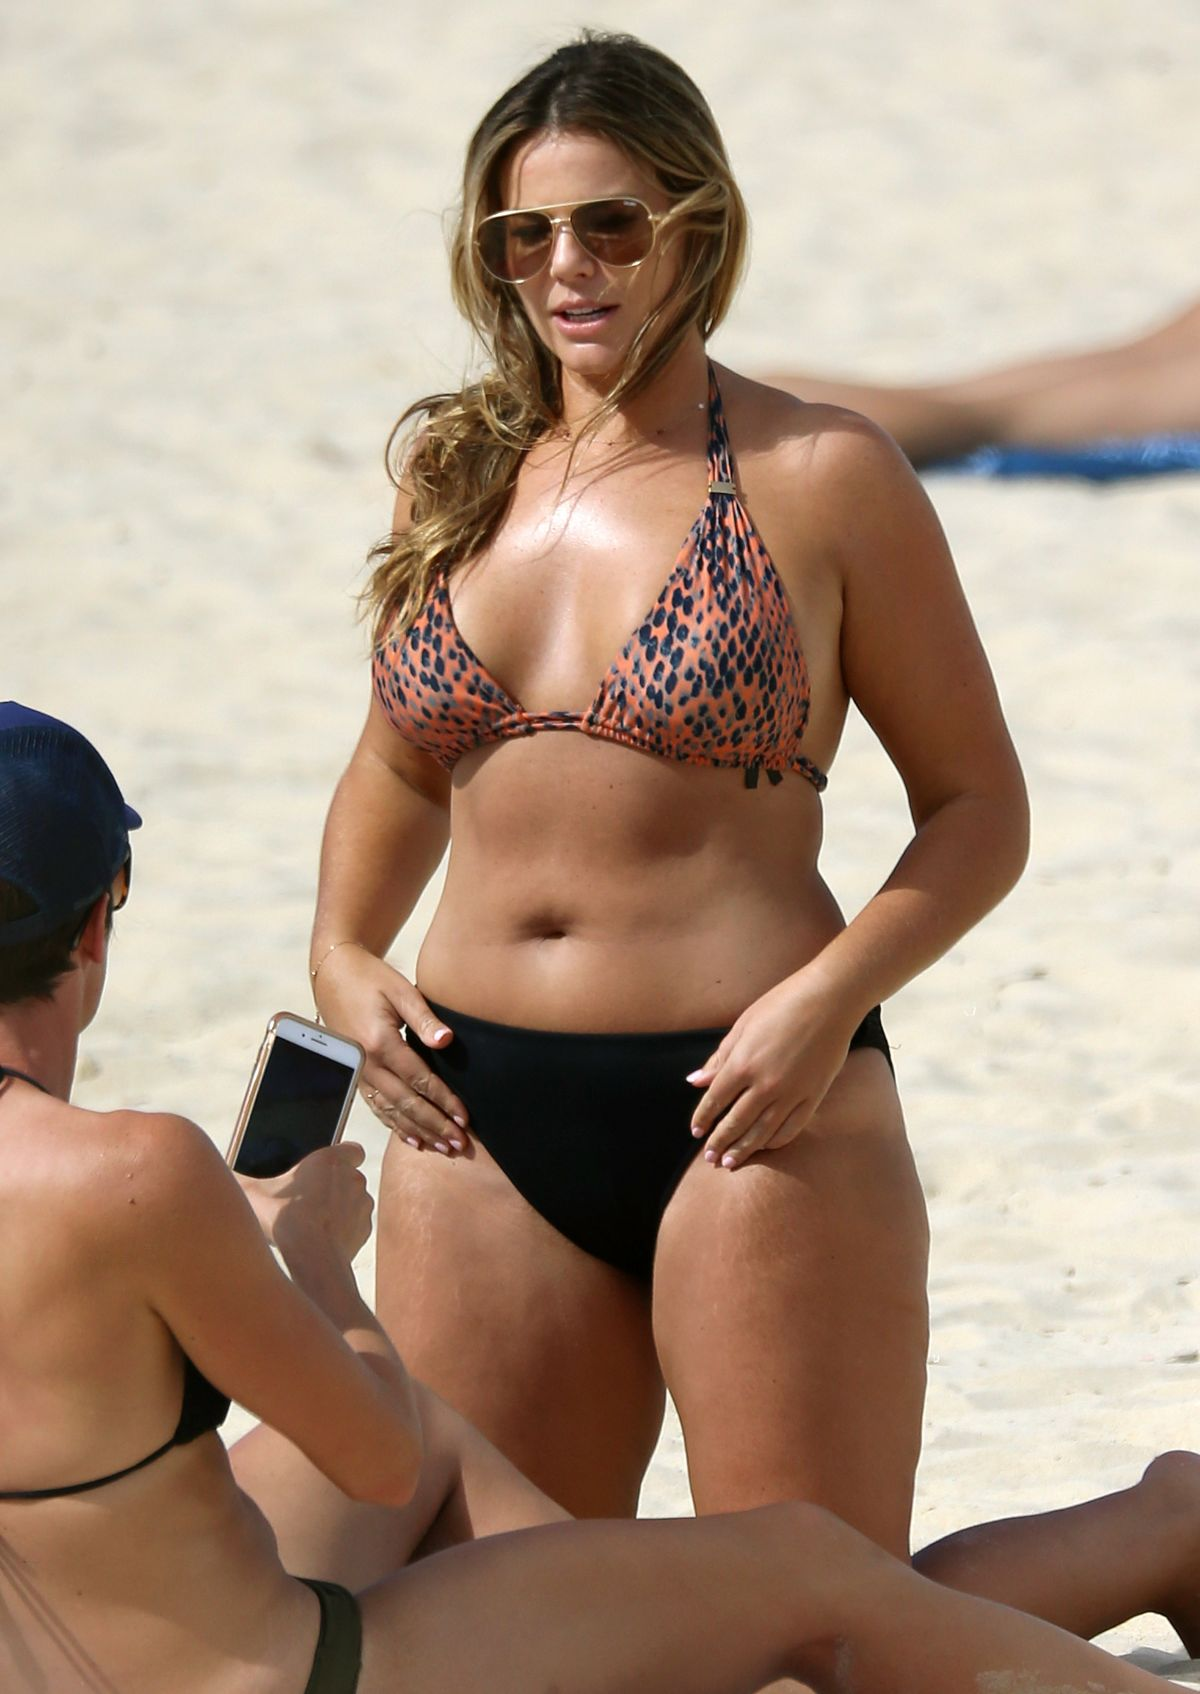 Fiona Falkiner in Bikini at Coogee Beach in Sydney Pic 4 of 35